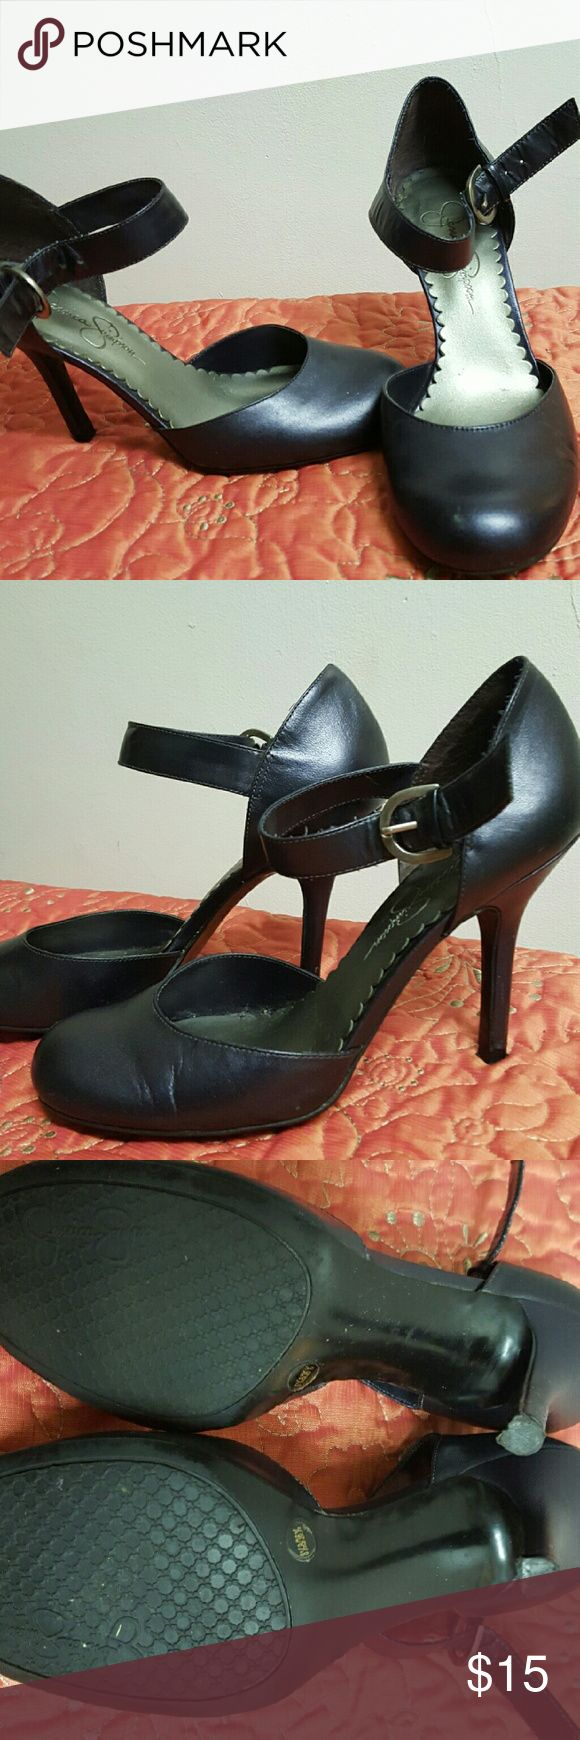 Jessica Simpson high heels Violet colored Jessica Simpson strap high heels size  6 1/2 used Jessica Simpson Shoes Heels